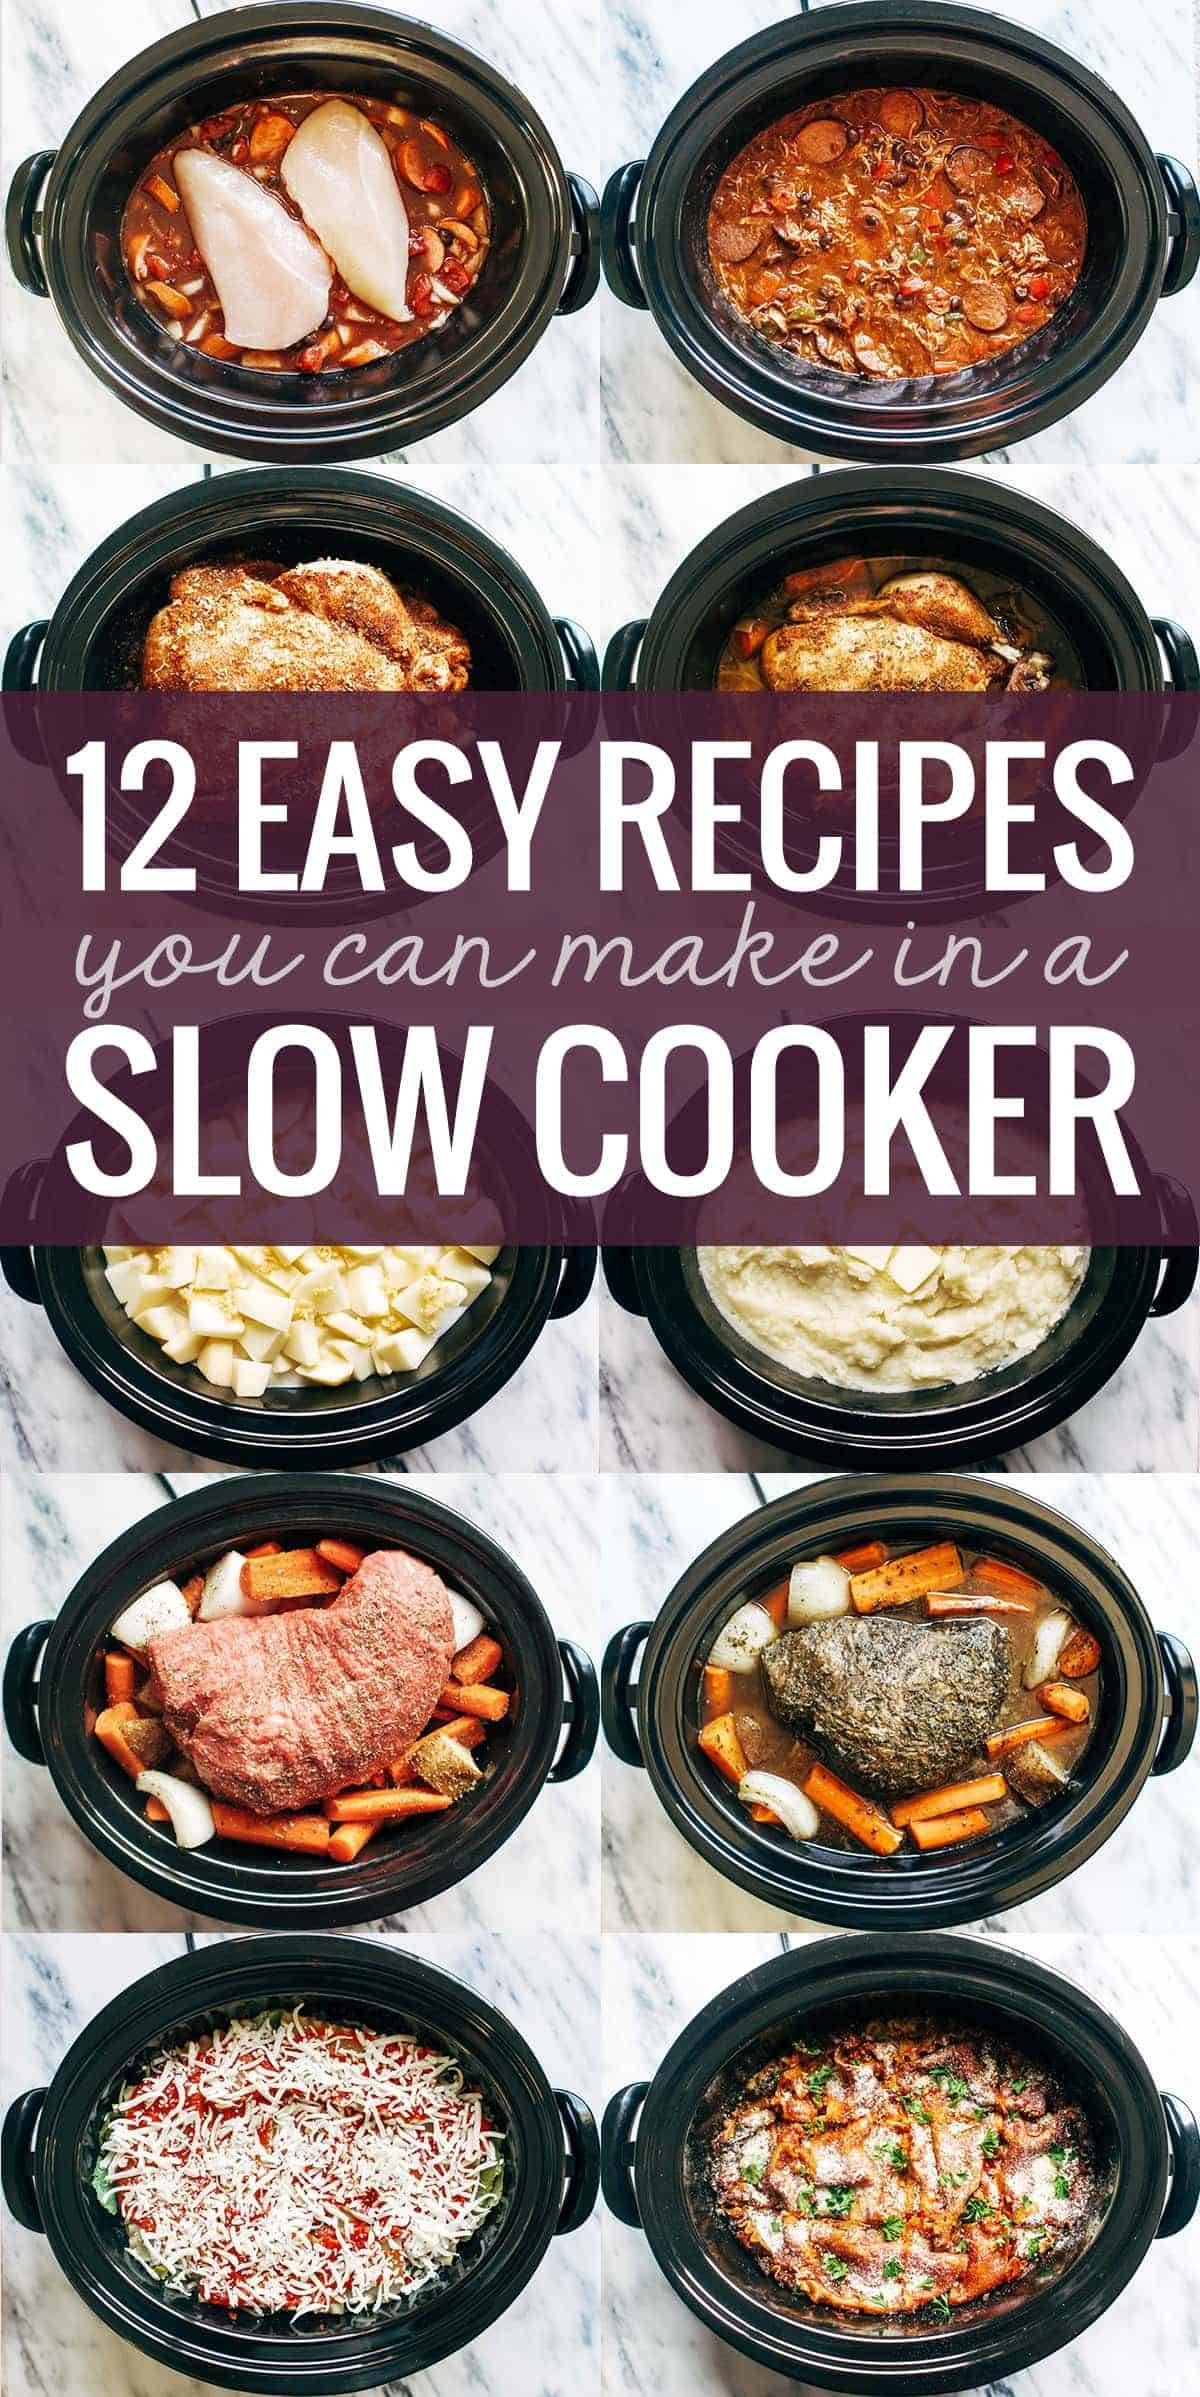 12 easy recipes you can make in a slow cooker pinch of yum 12 easy recipes you can make in a slow cooker forumfinder Images